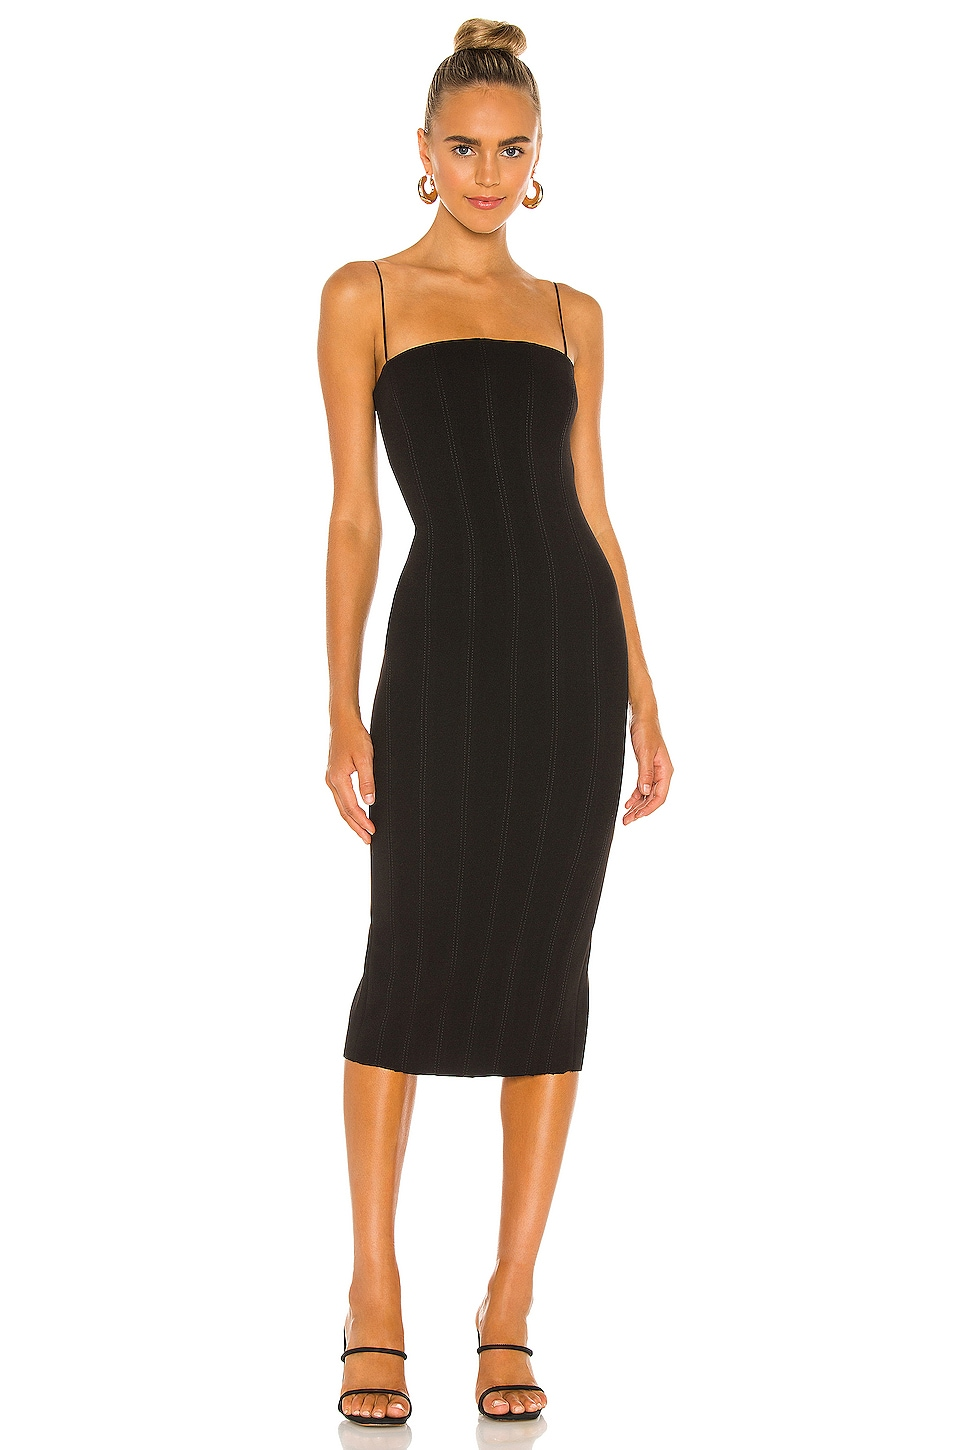 Misha Collection Irisa Dress in Black